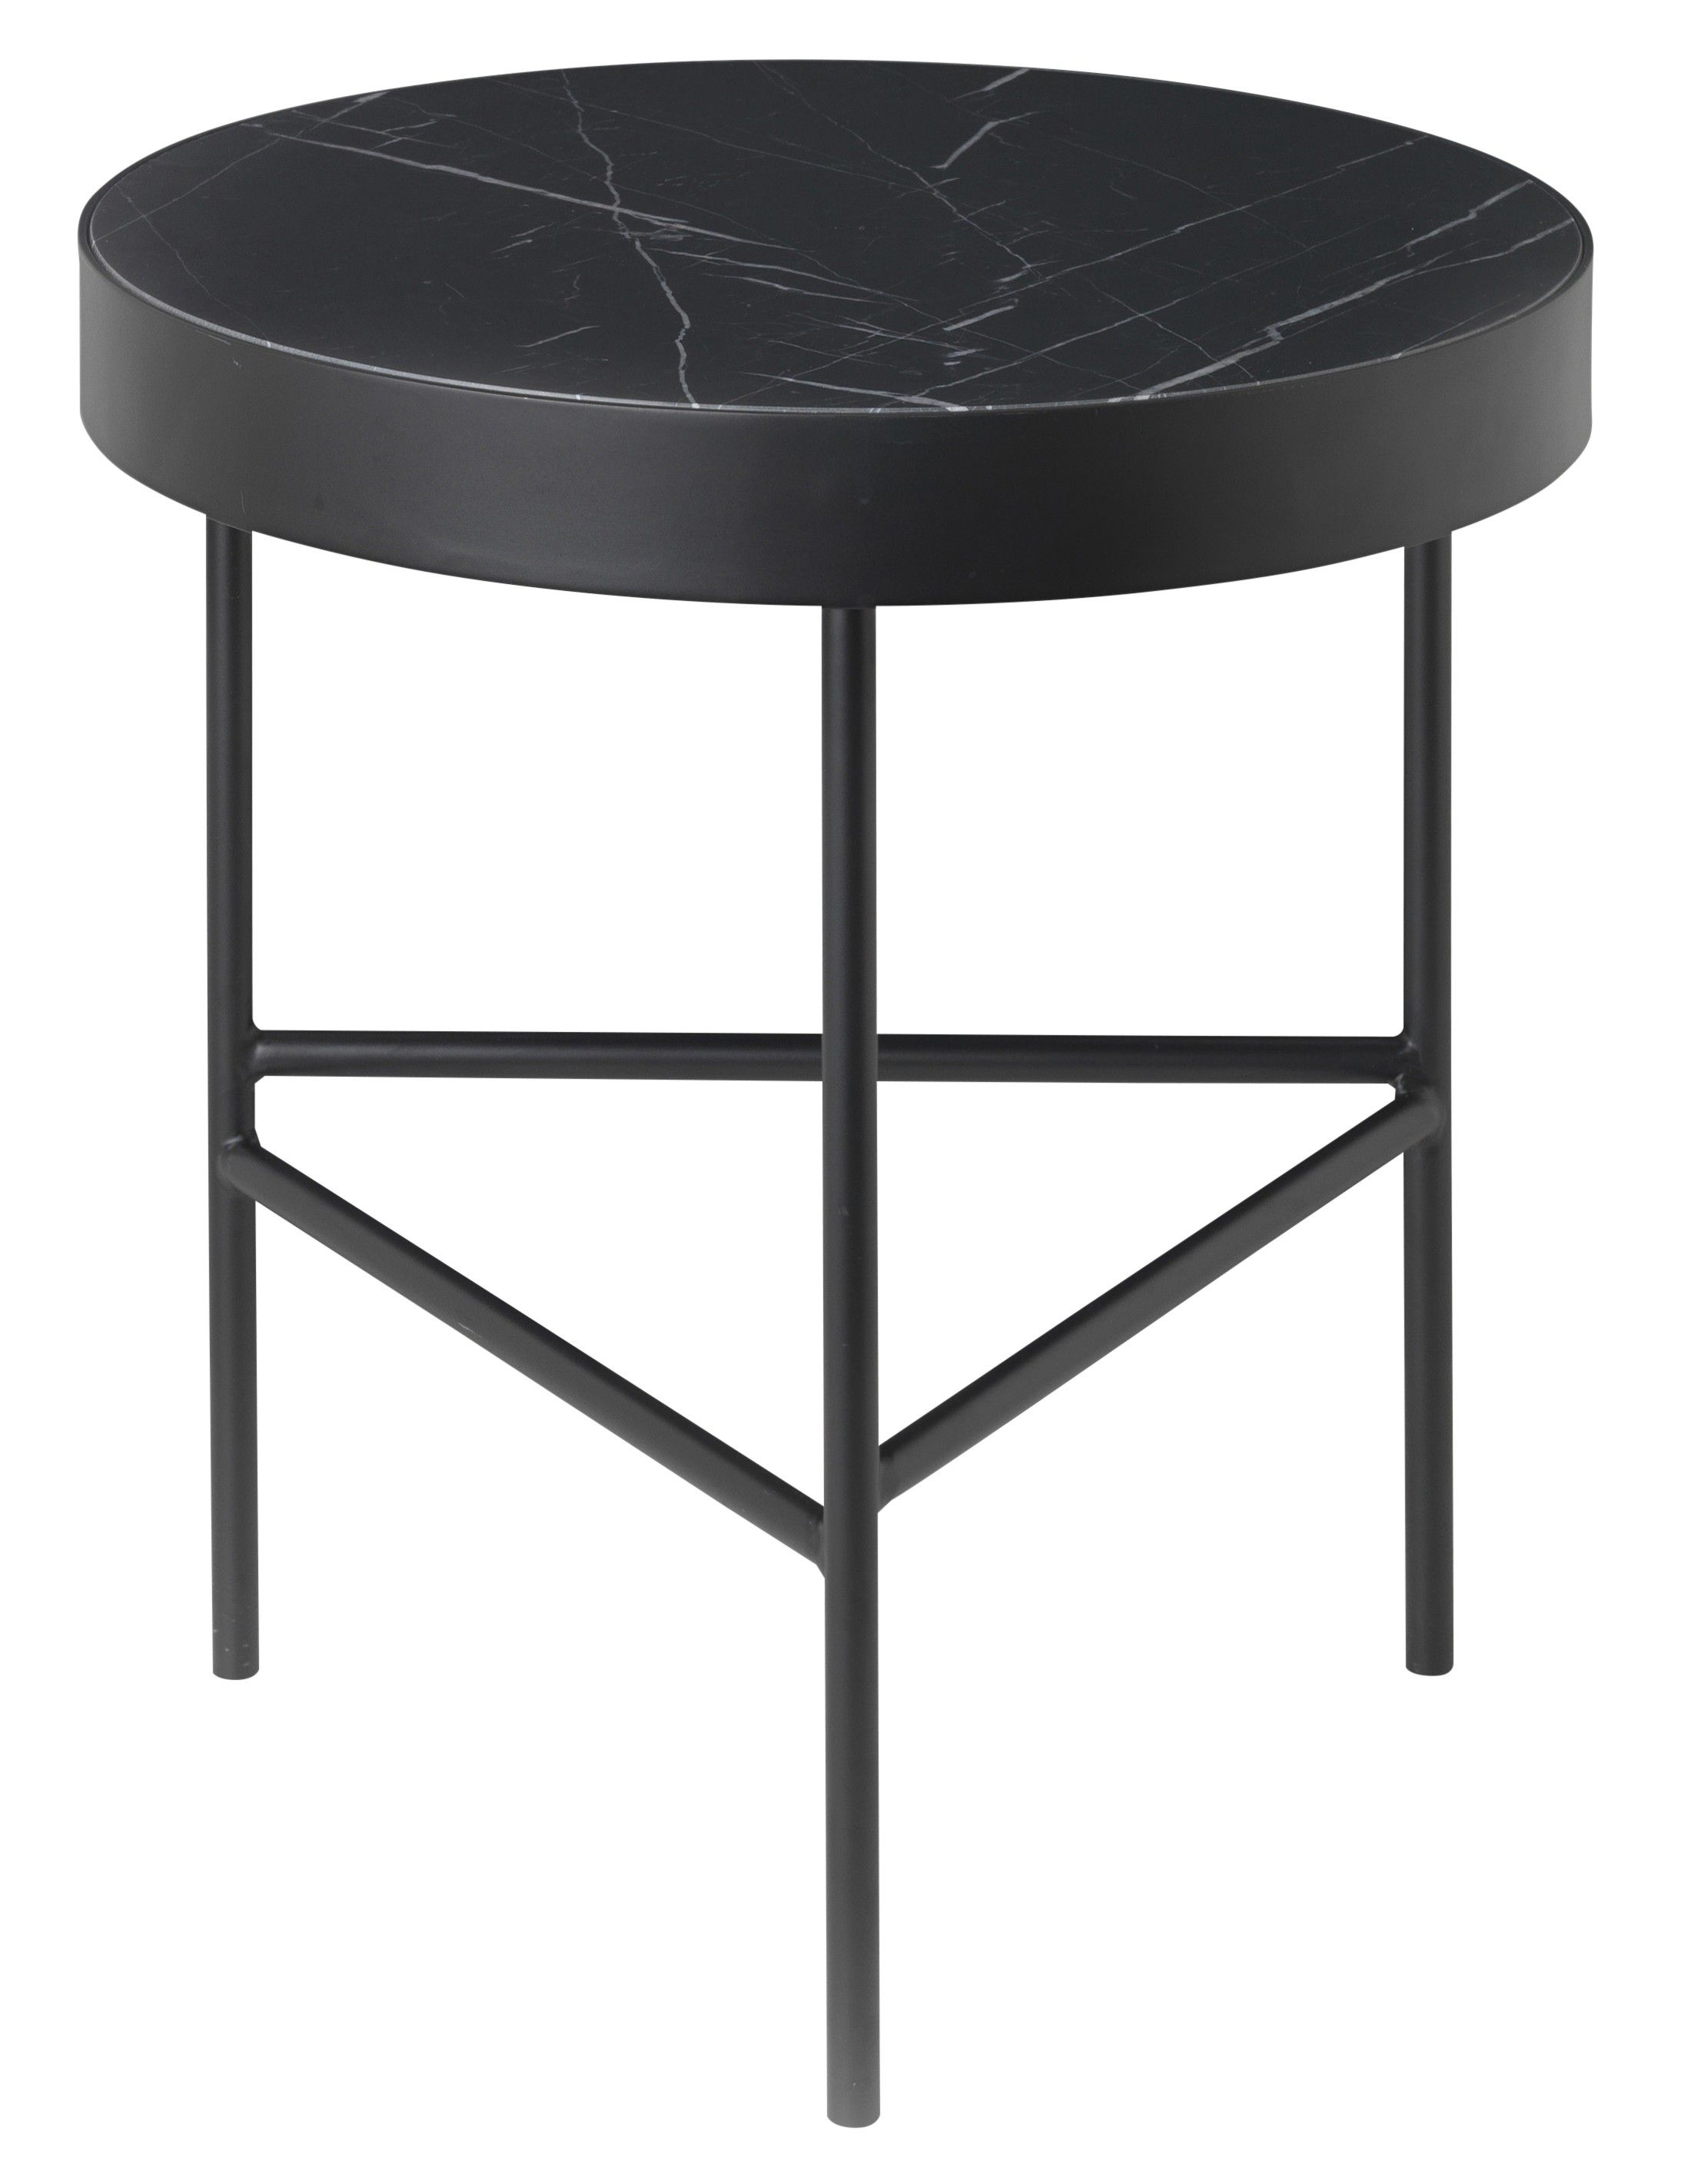 Give Your Space A Luxe Modern Look With This Round Marble Topped